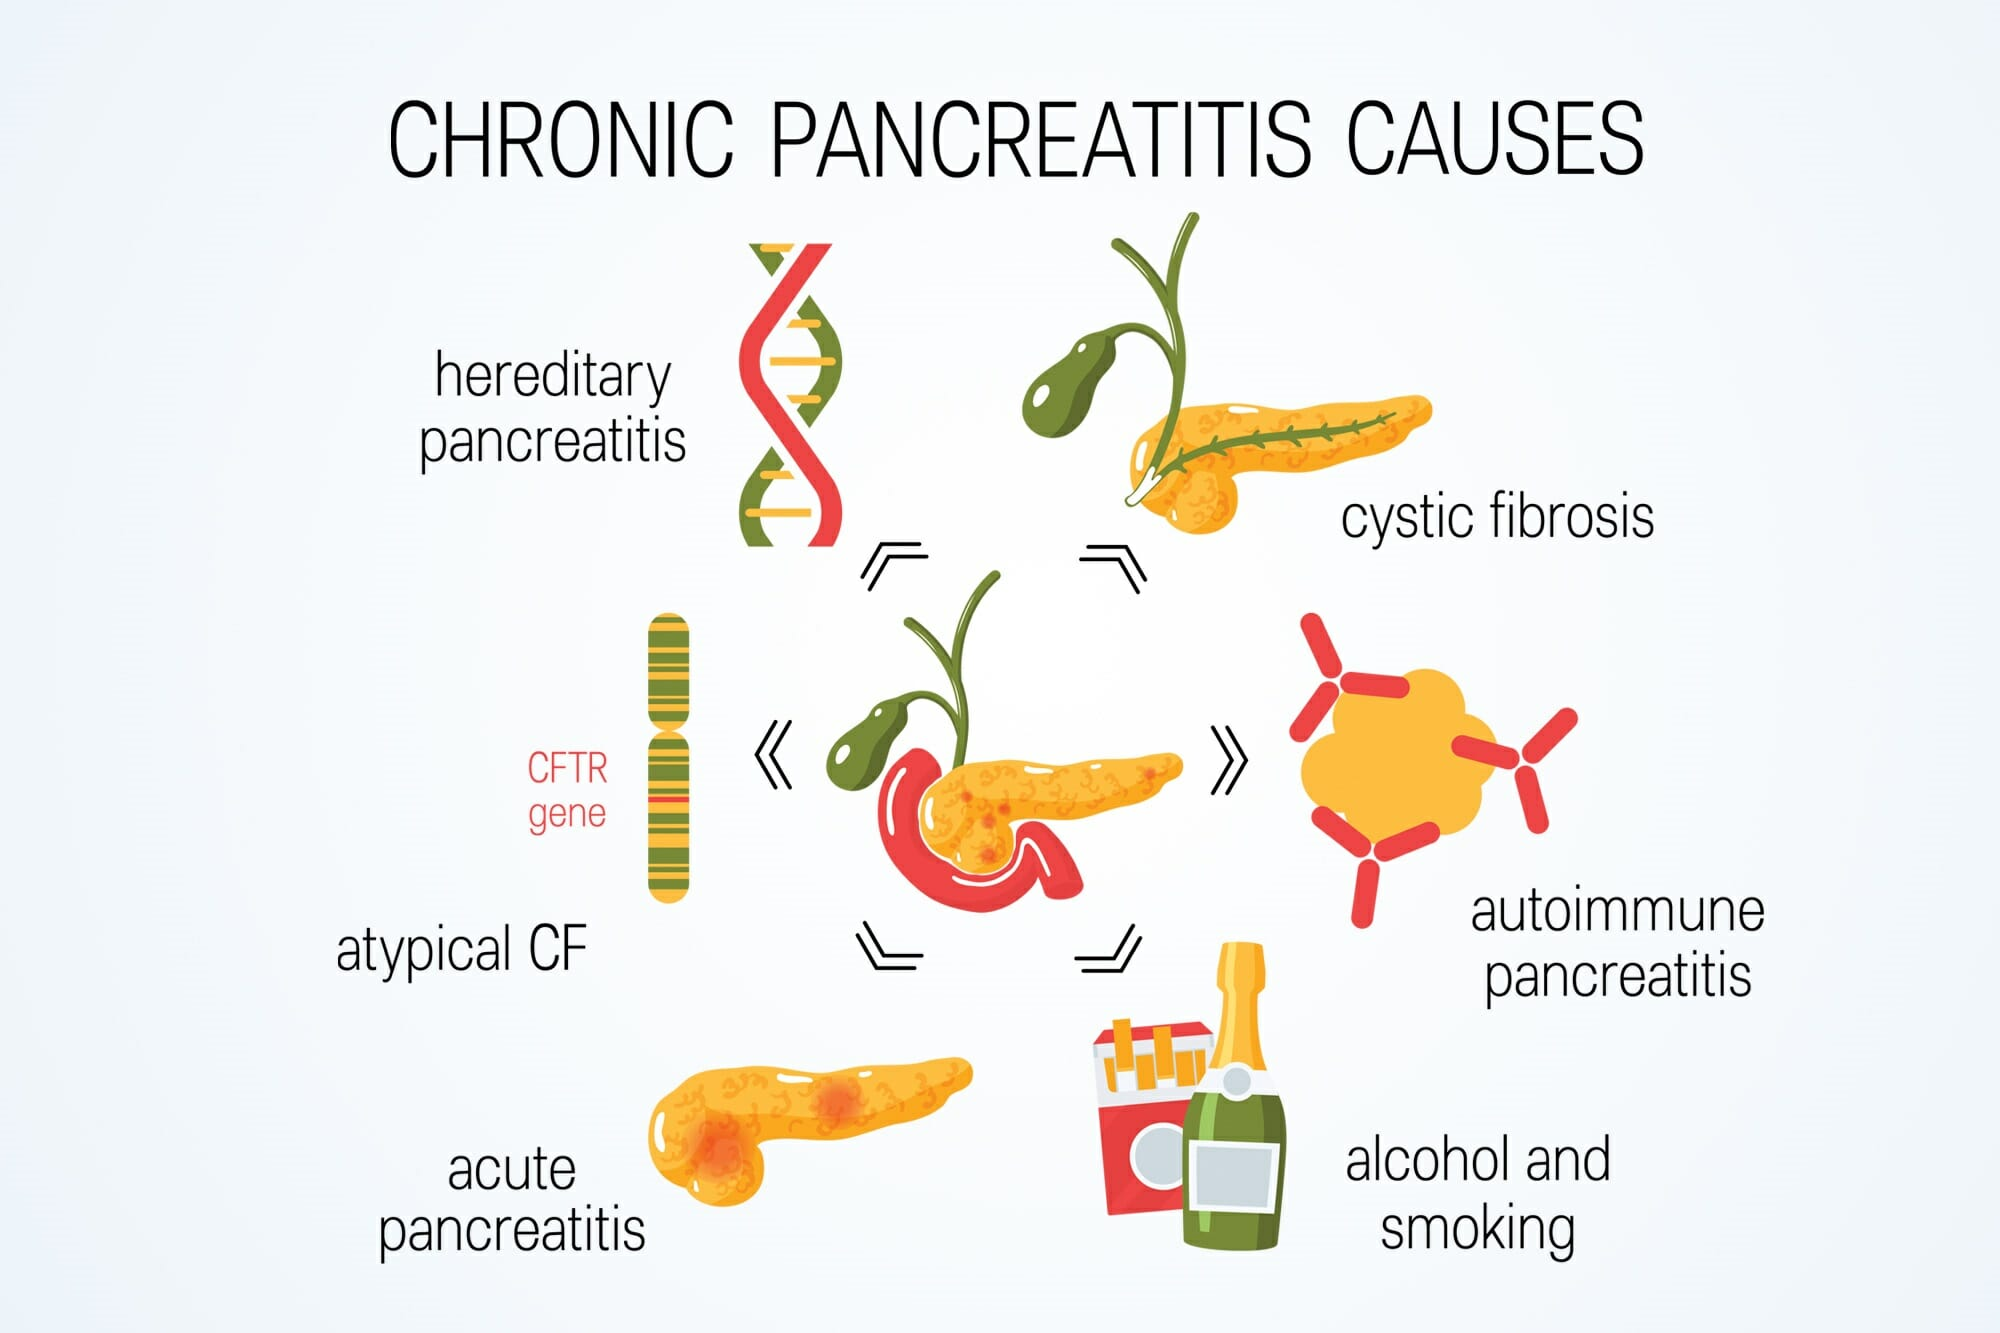 chronic pancreatitis causes2 SH 1240247728